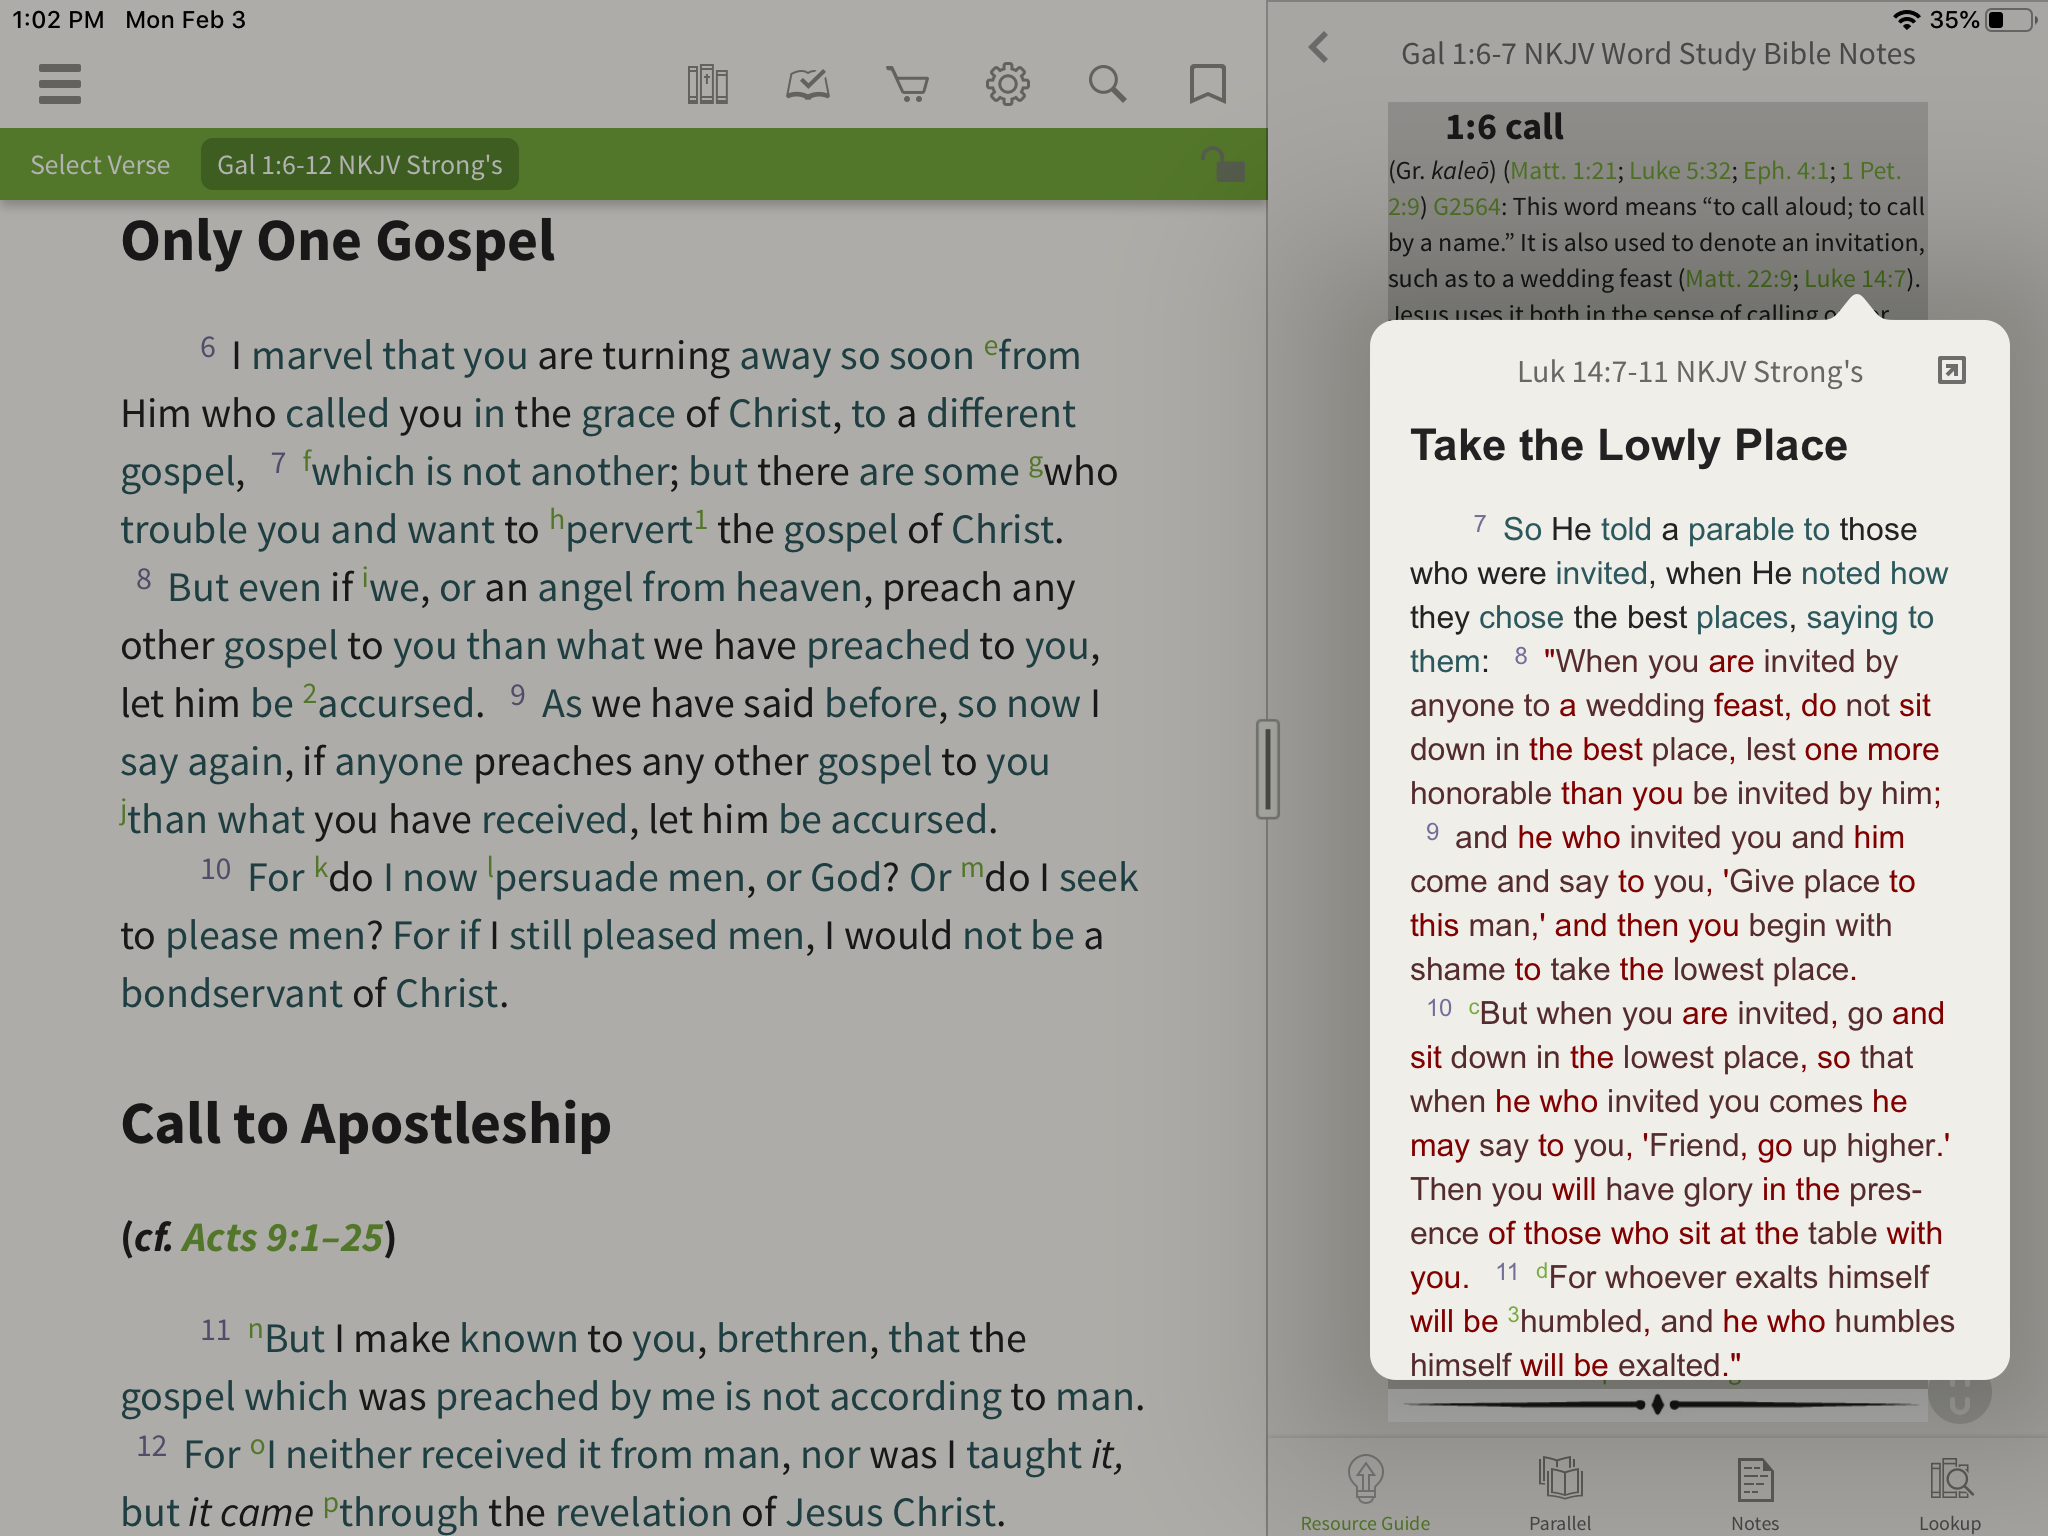 hyperlinked notes in the word study bible